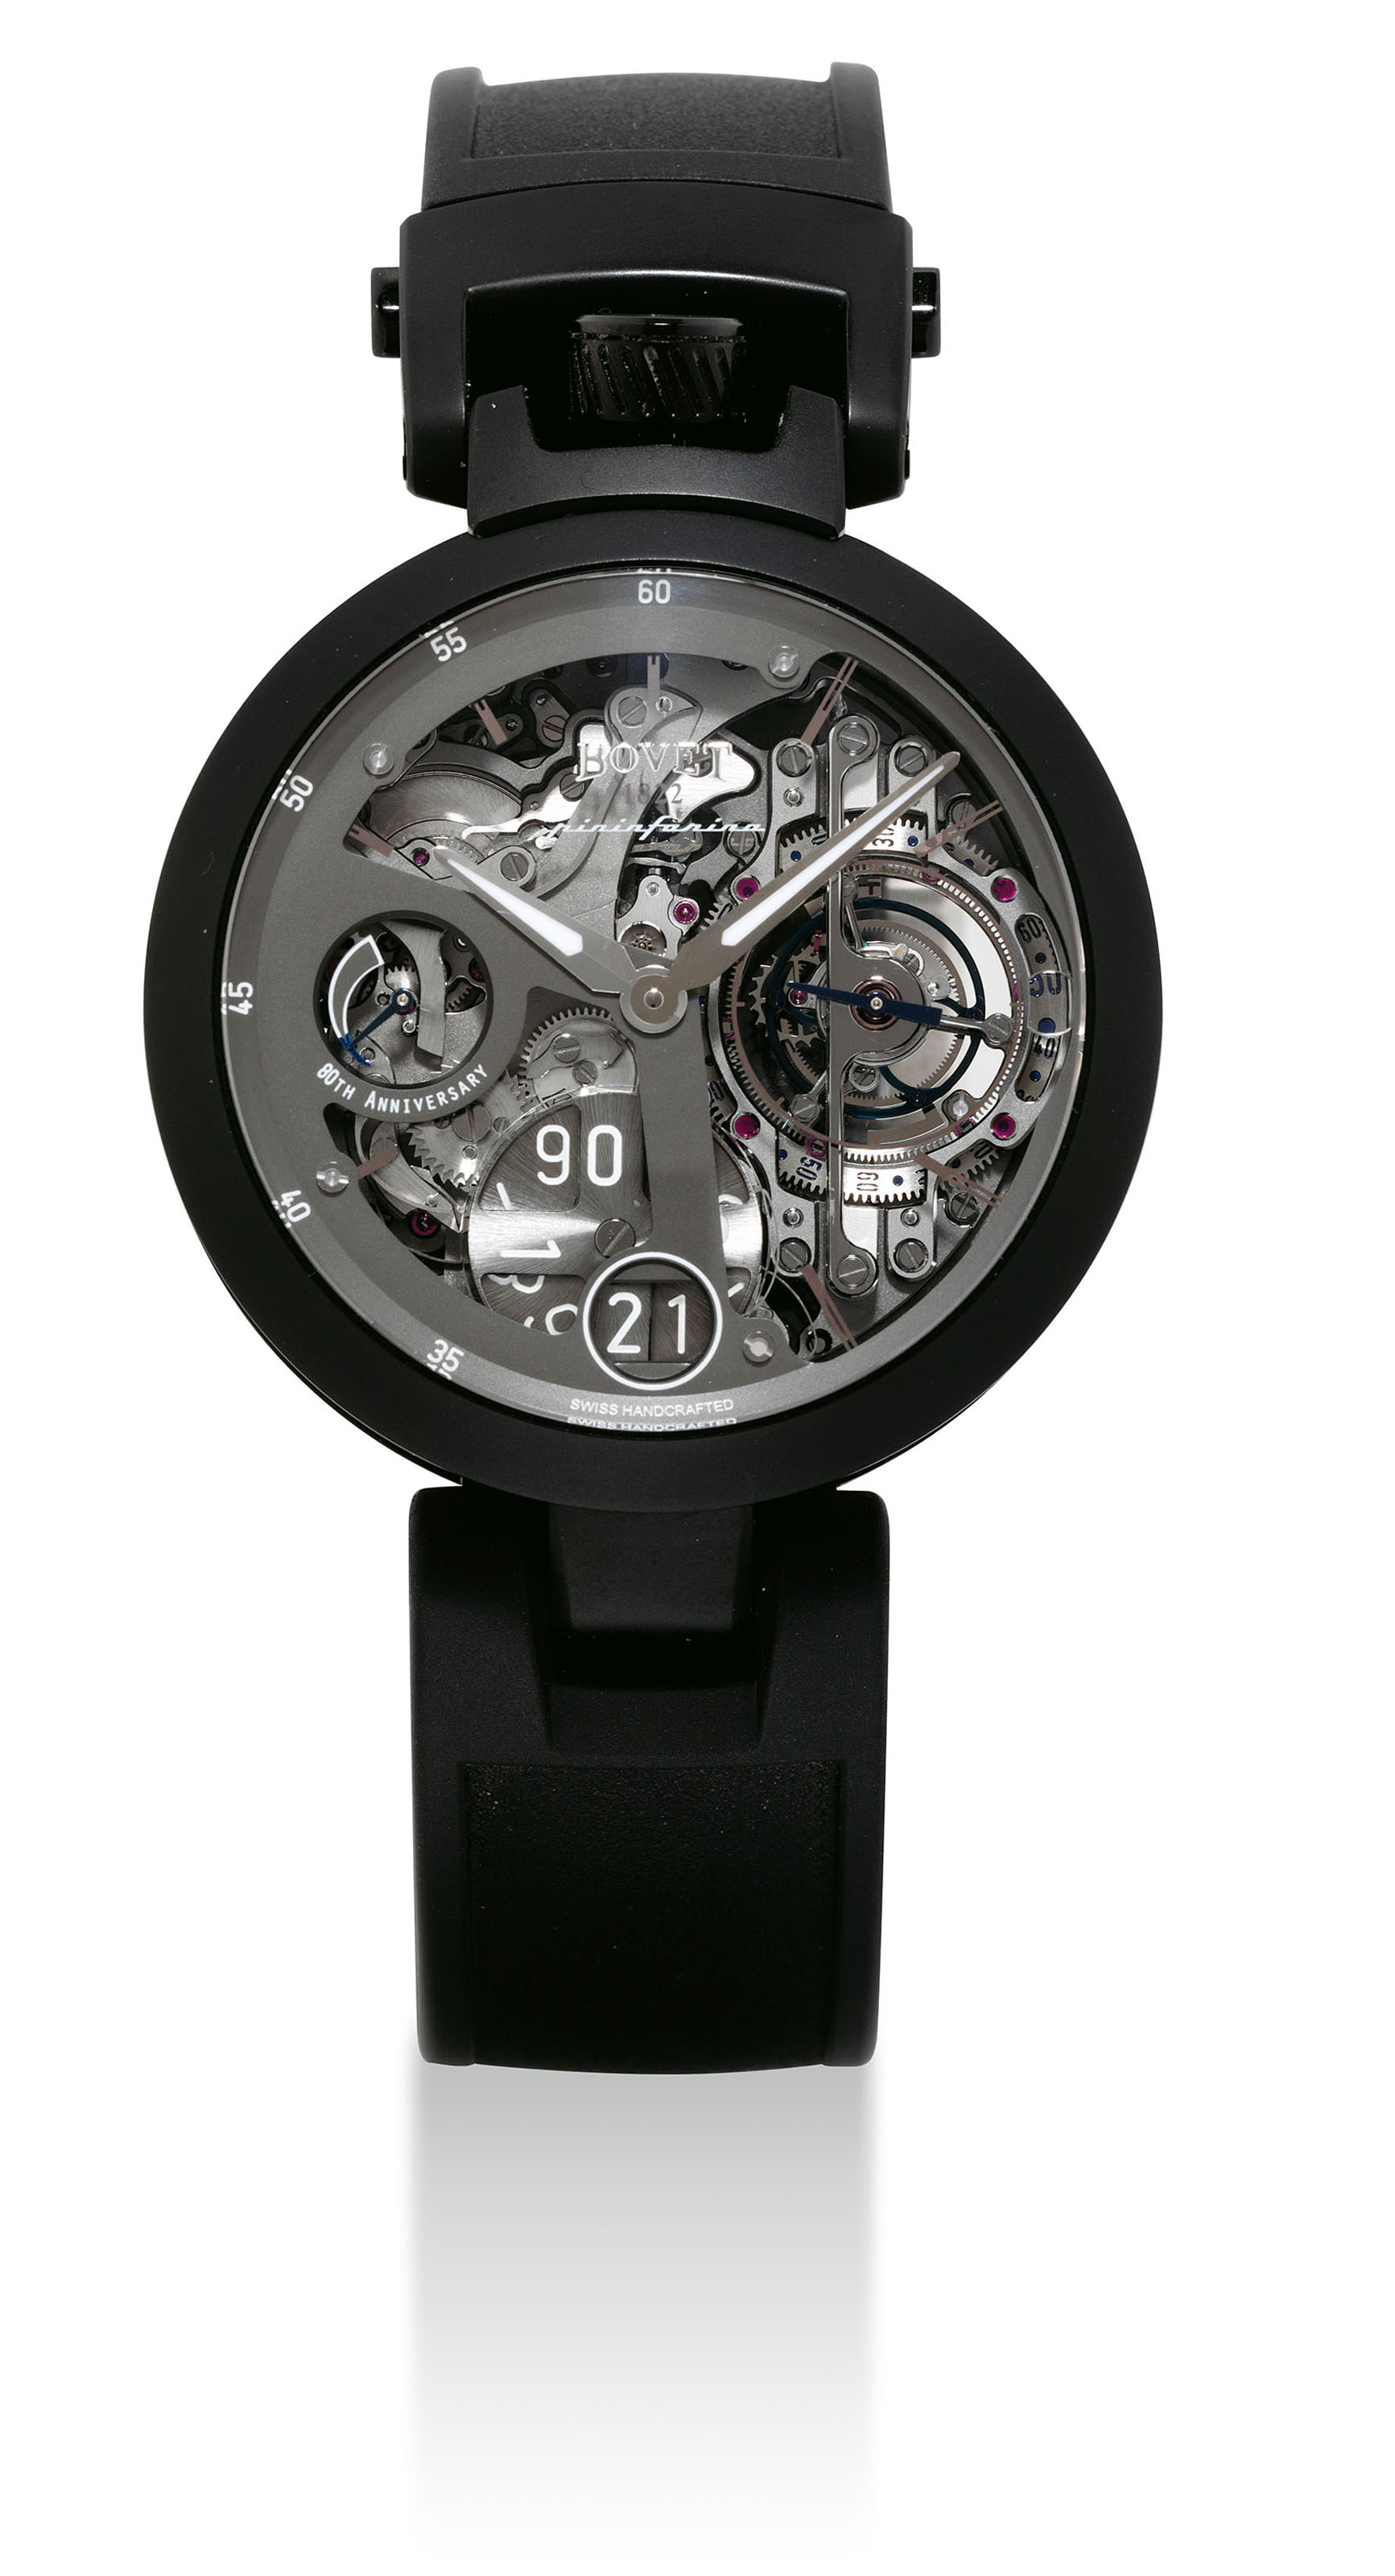 BOVET. A FINE AND RARE TITANIUM AND DLC COATED STAINLESS STEEL LIMITED EDITION AUTOMATIC SEMI-SKELETONISED TOURBILLON CONVERTIBLE TIMEPIECE WITH DATE AND POWER RESERVE, MADE FOR PININFARINA'S 80TH ANNIVERSARY